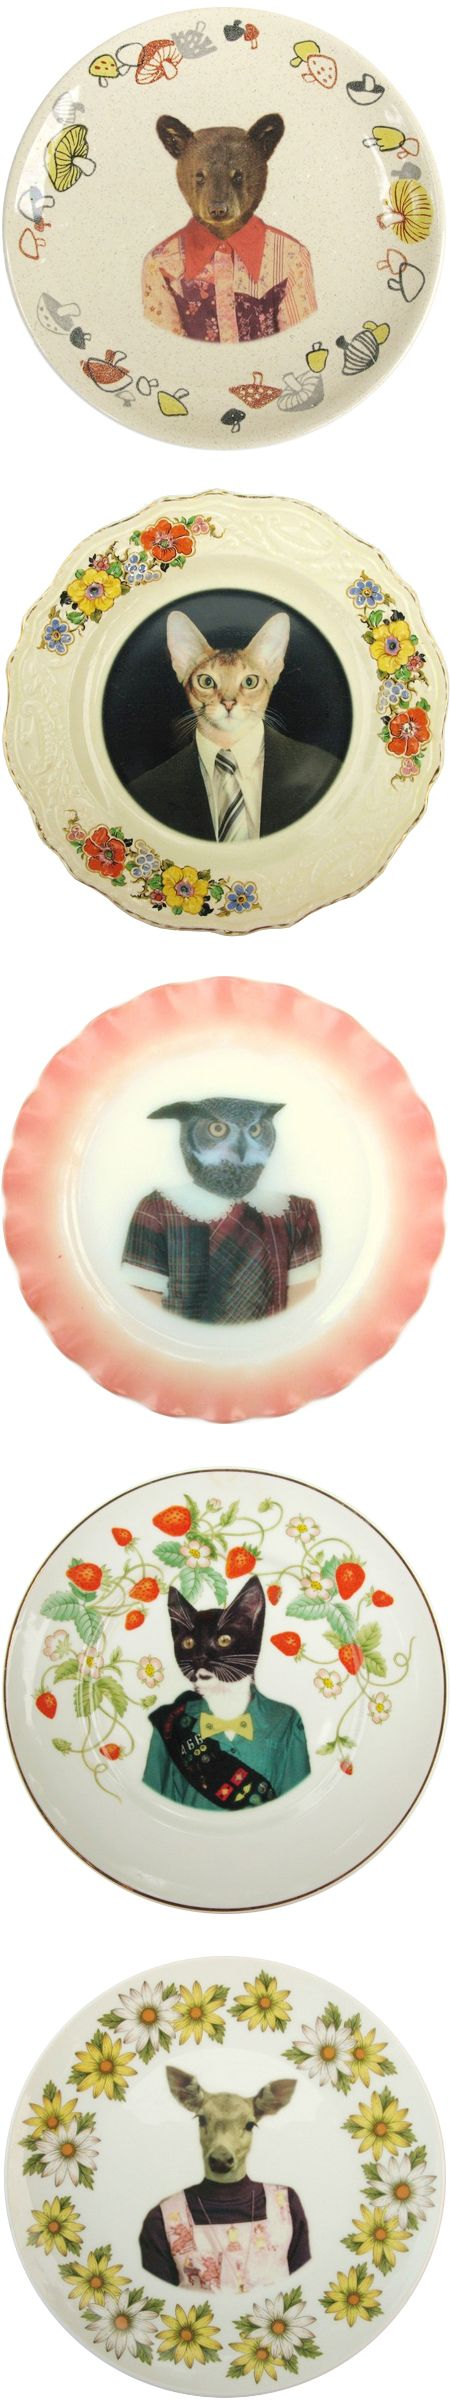 animal plates-must have!